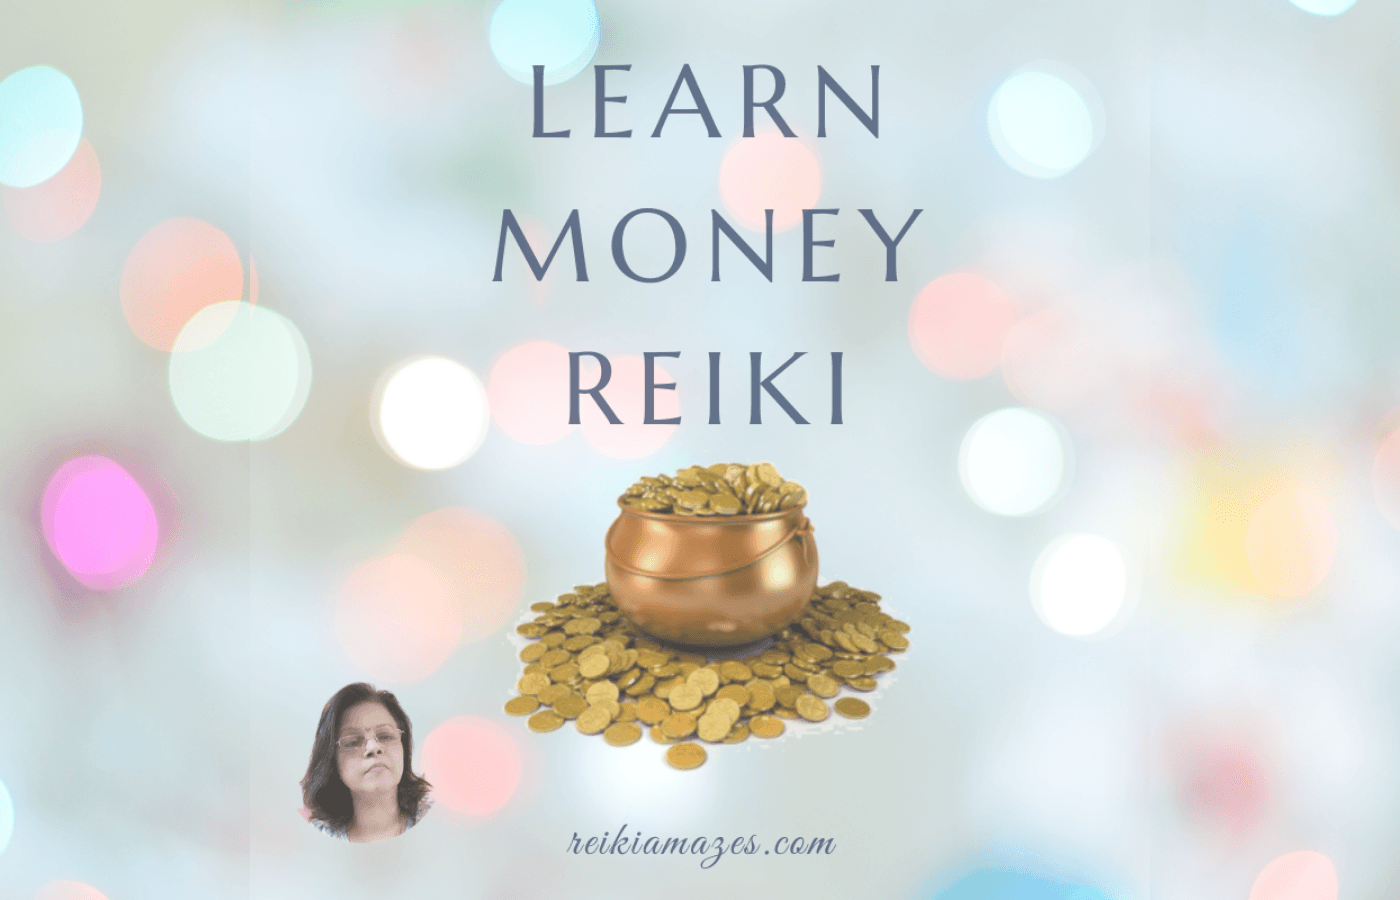 learn money reiki 1440x900